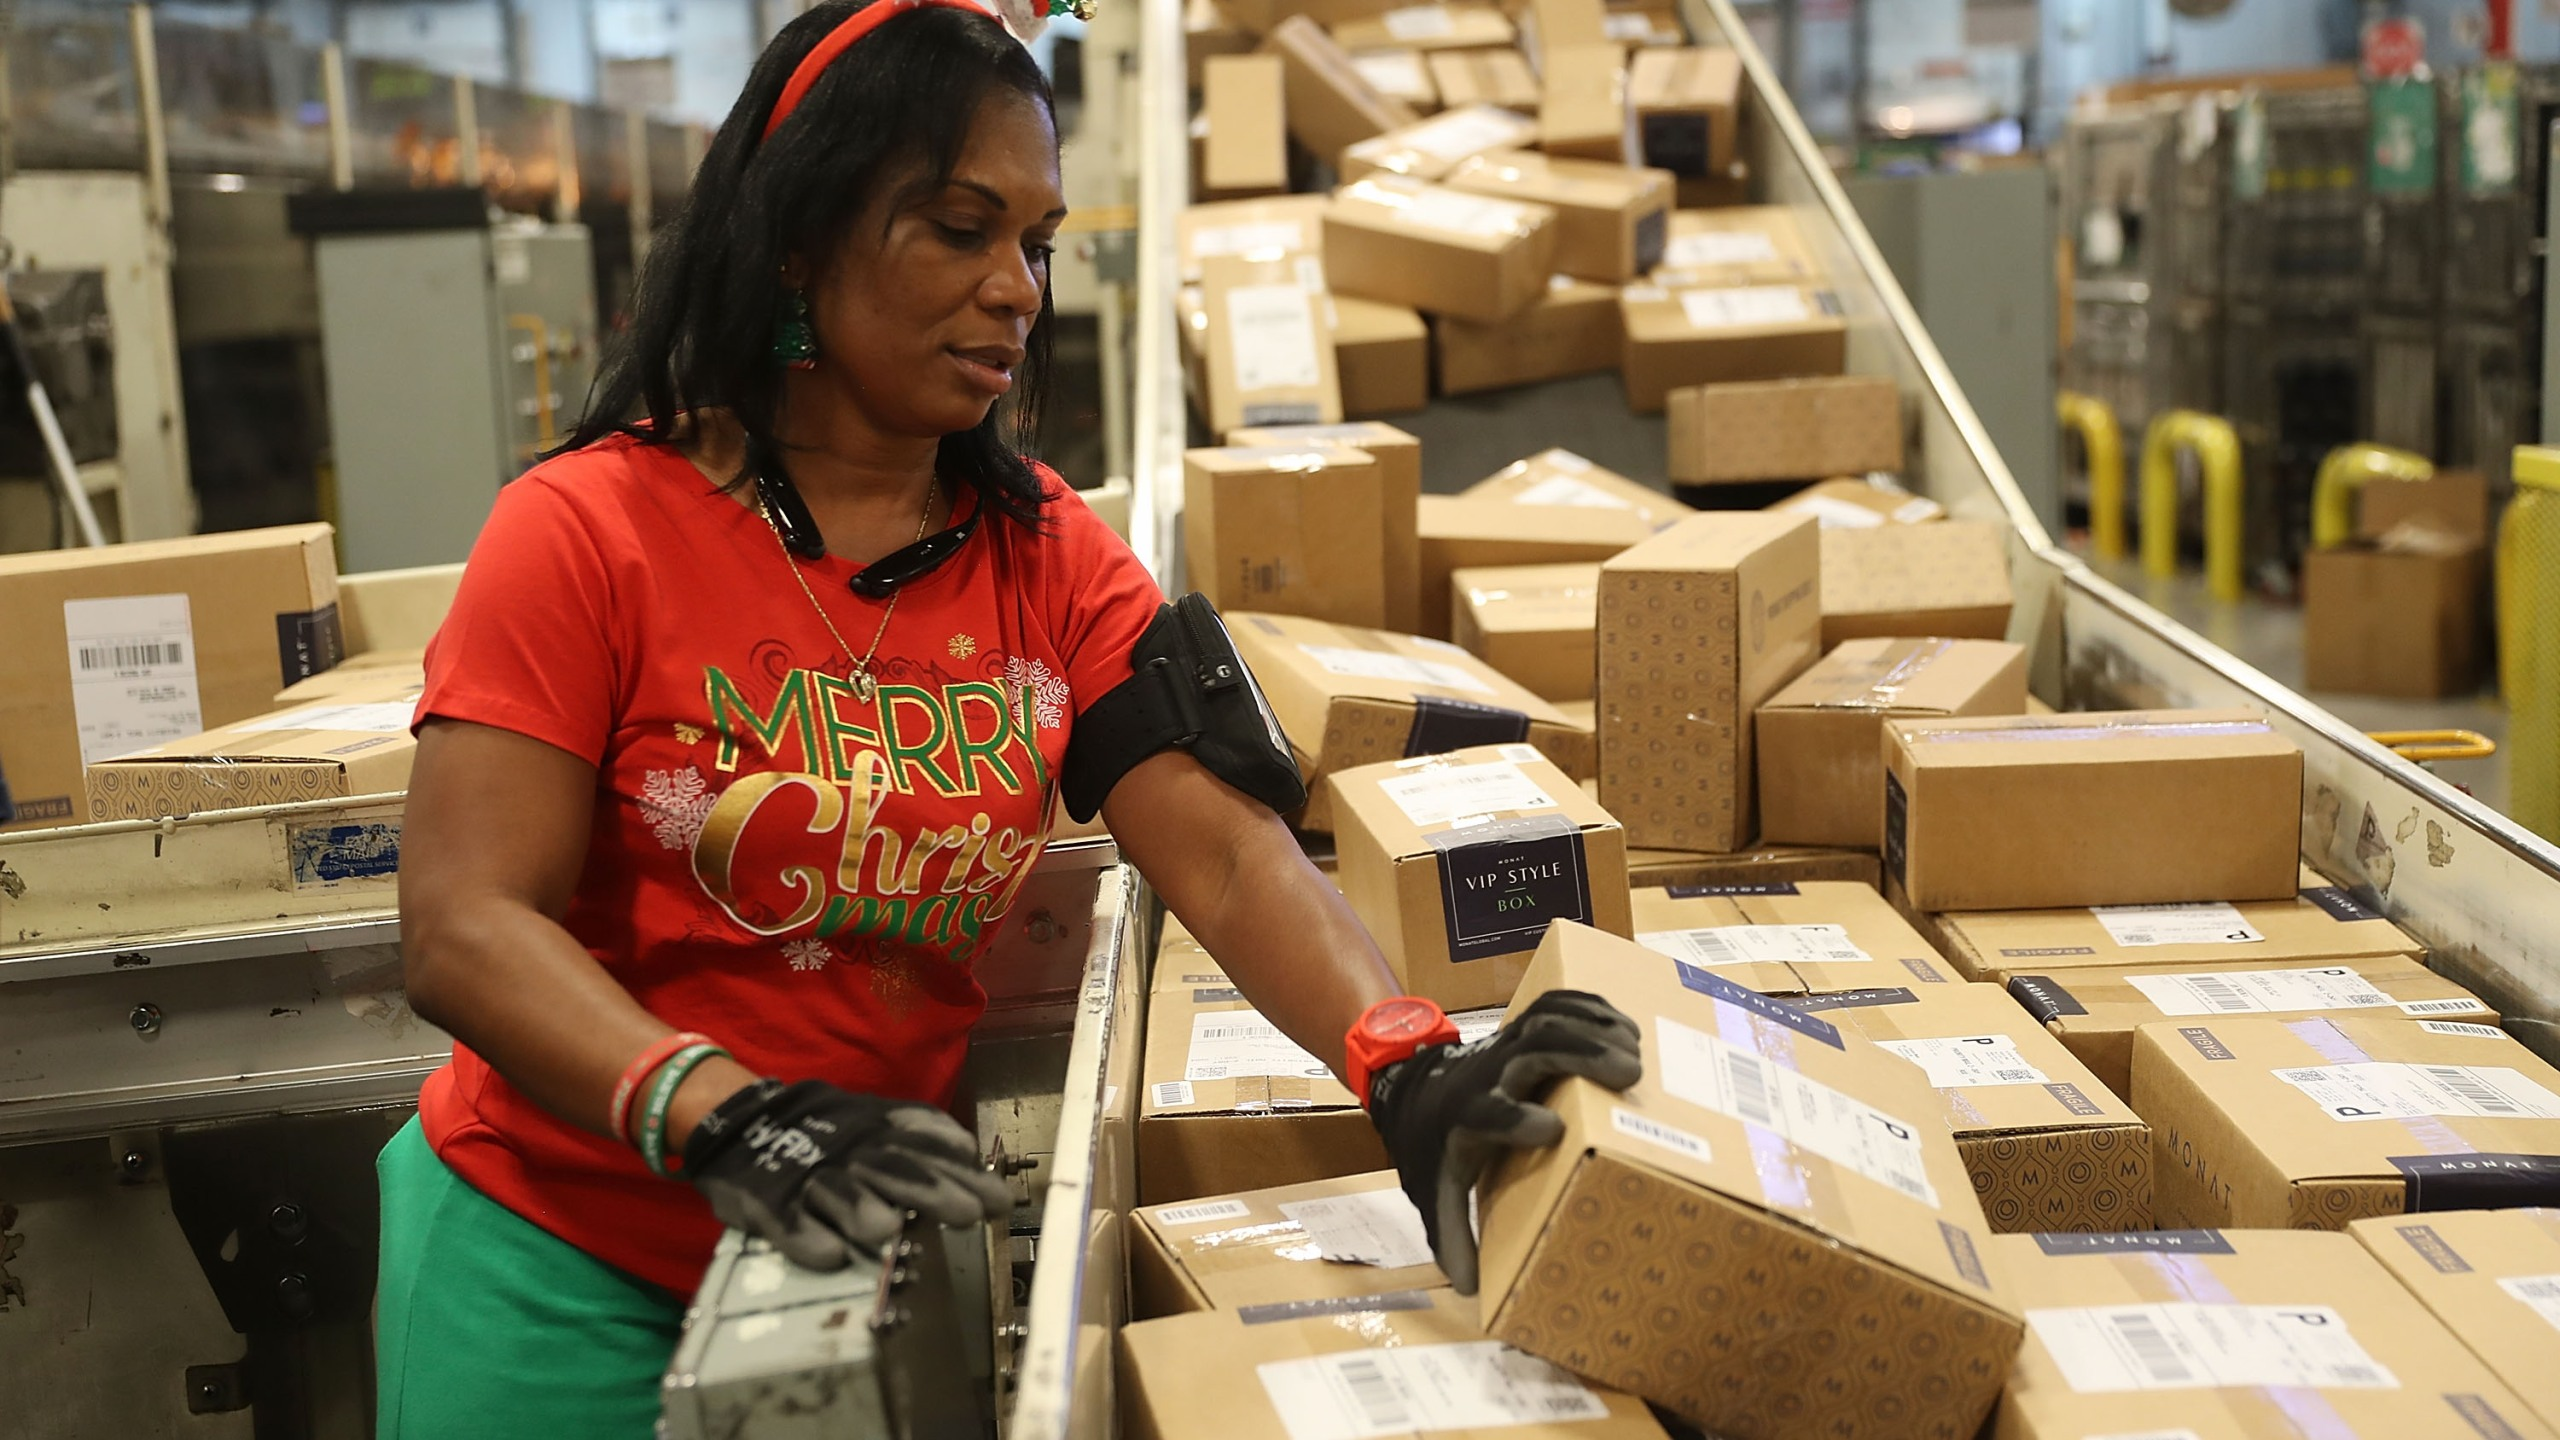 U.S. Postal service mail handler Barbara Lynn sorts boxes at the U.S. Postal service's Royal Palm Processing and Distribution Center on Dec. 4, 2017 in Opa Locka, Florida. (Joe Raedle/Getty Images)